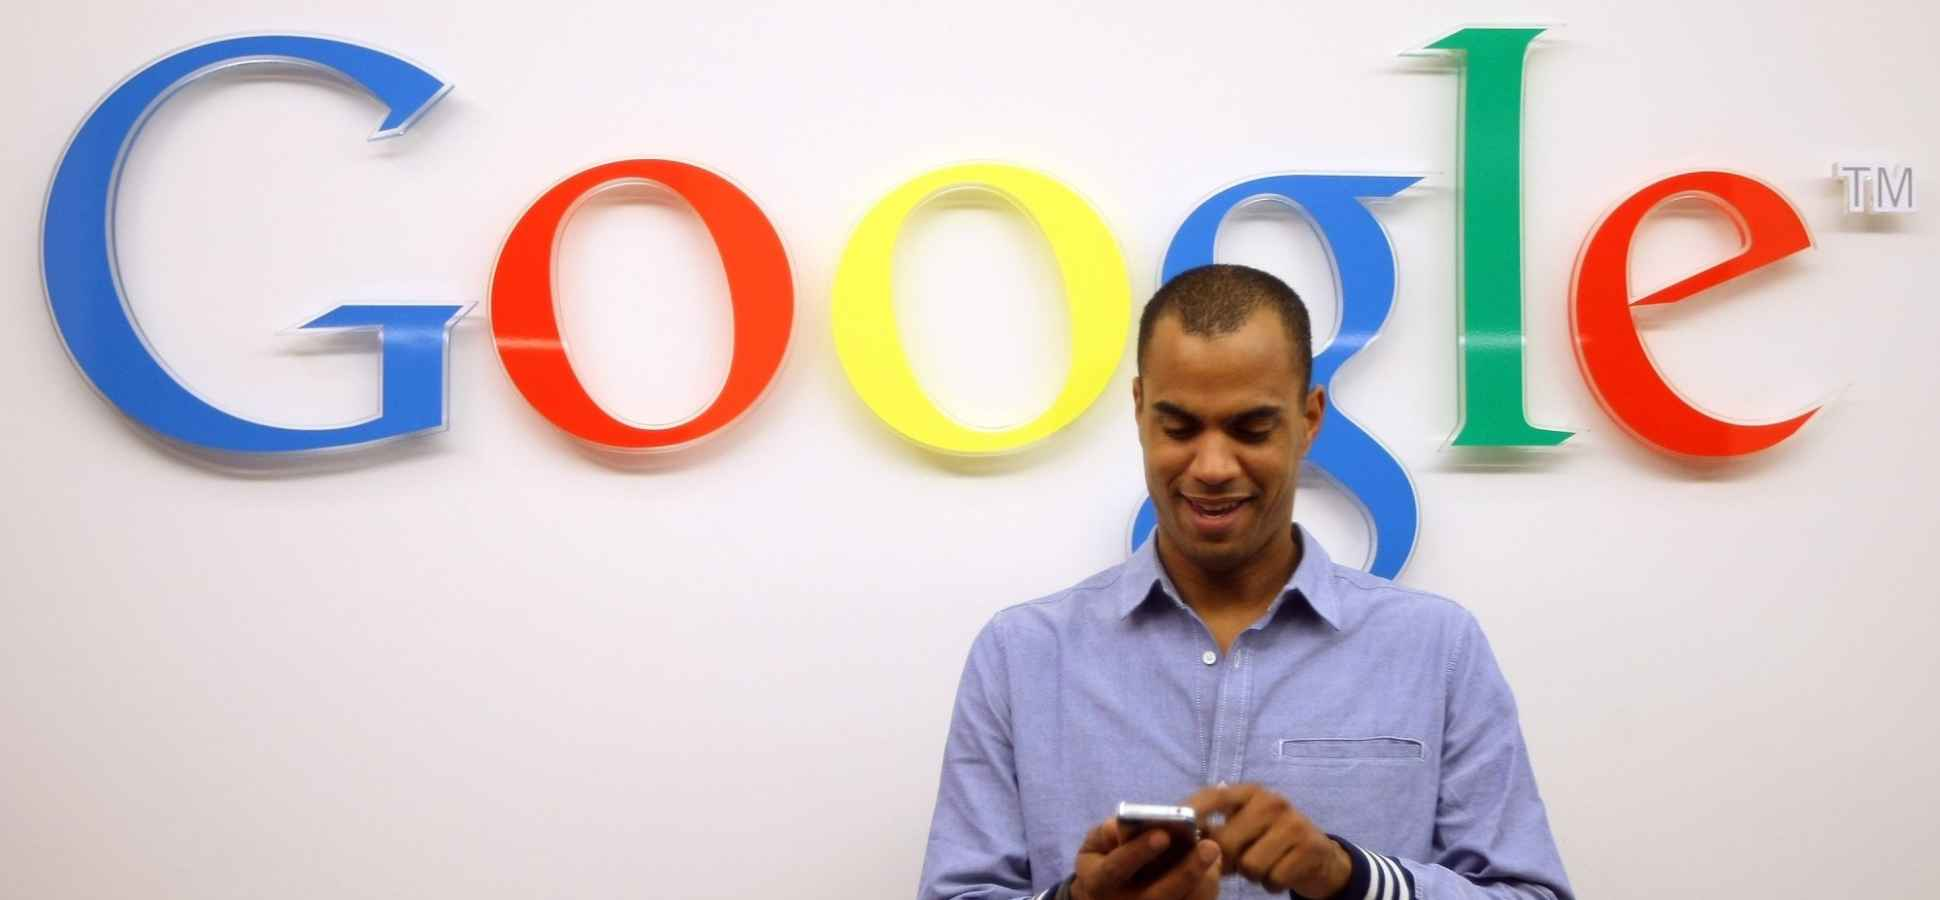 This Simple Practice Keeps Google Employees From Burning Out. You Can Use It Too